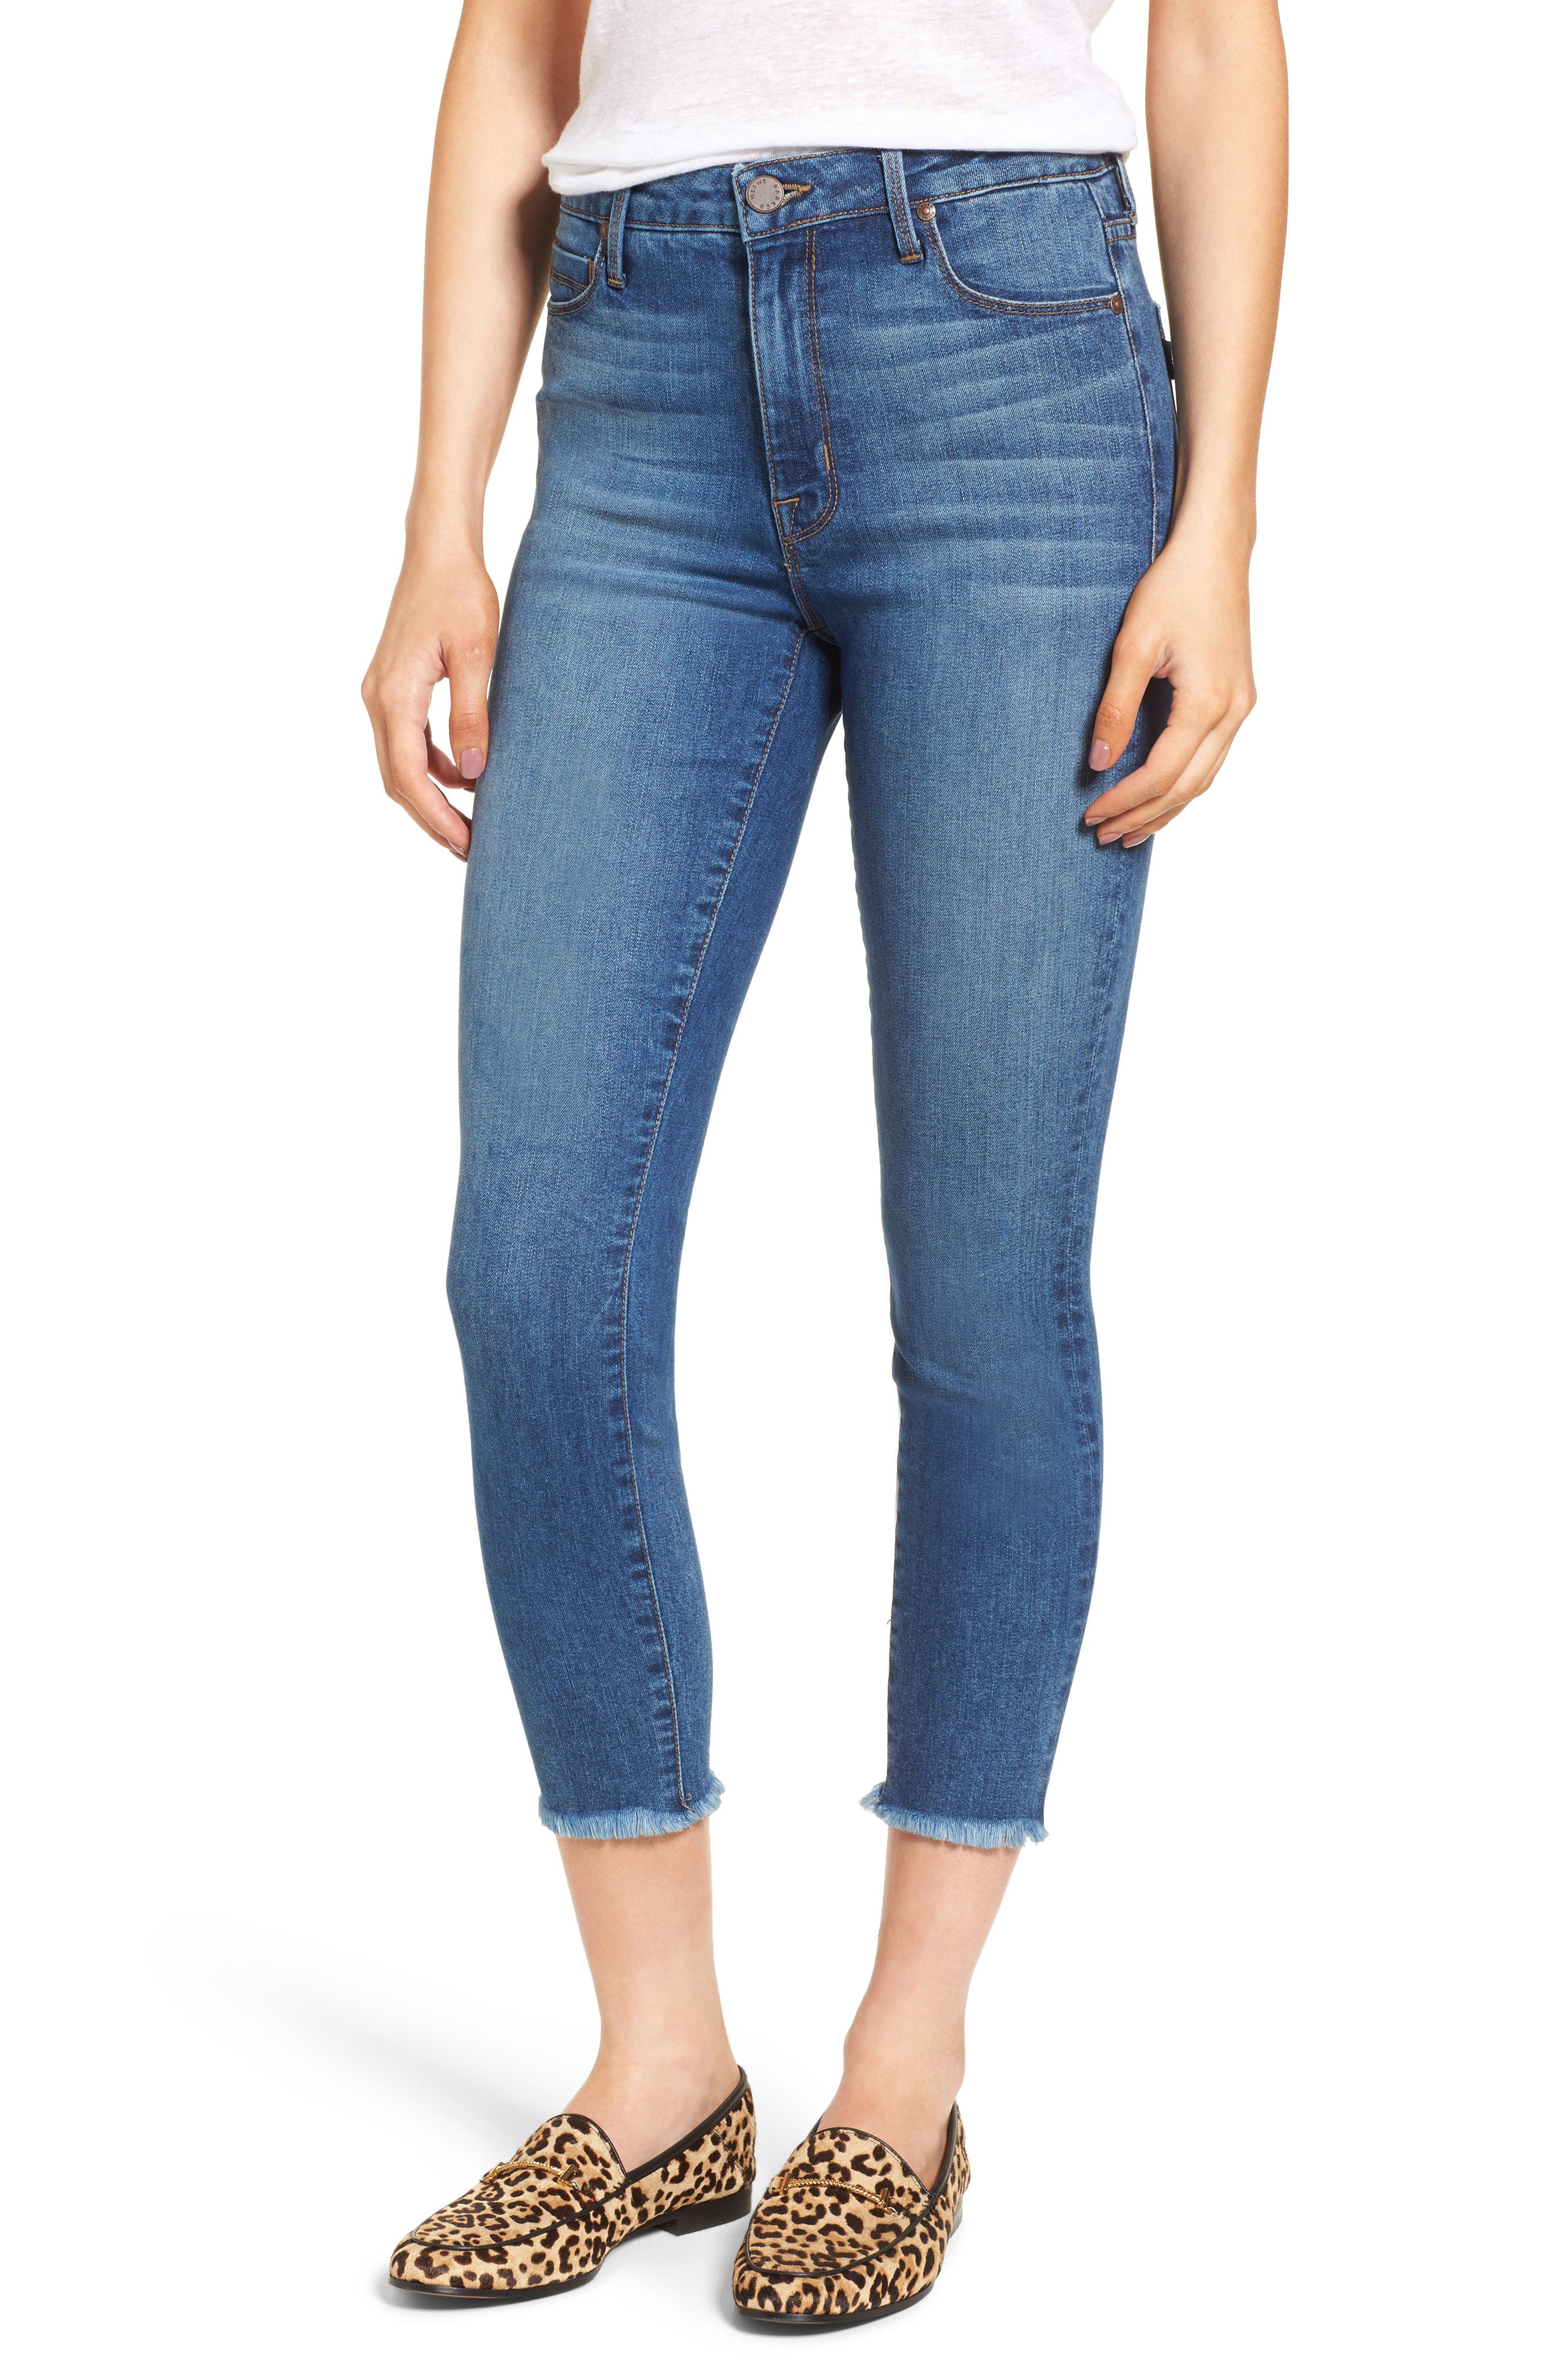 Alternate Image 1 Selected - PARKER SMITH Bombshell Raw Hem Stretch Skinny Jeans (Dawn)